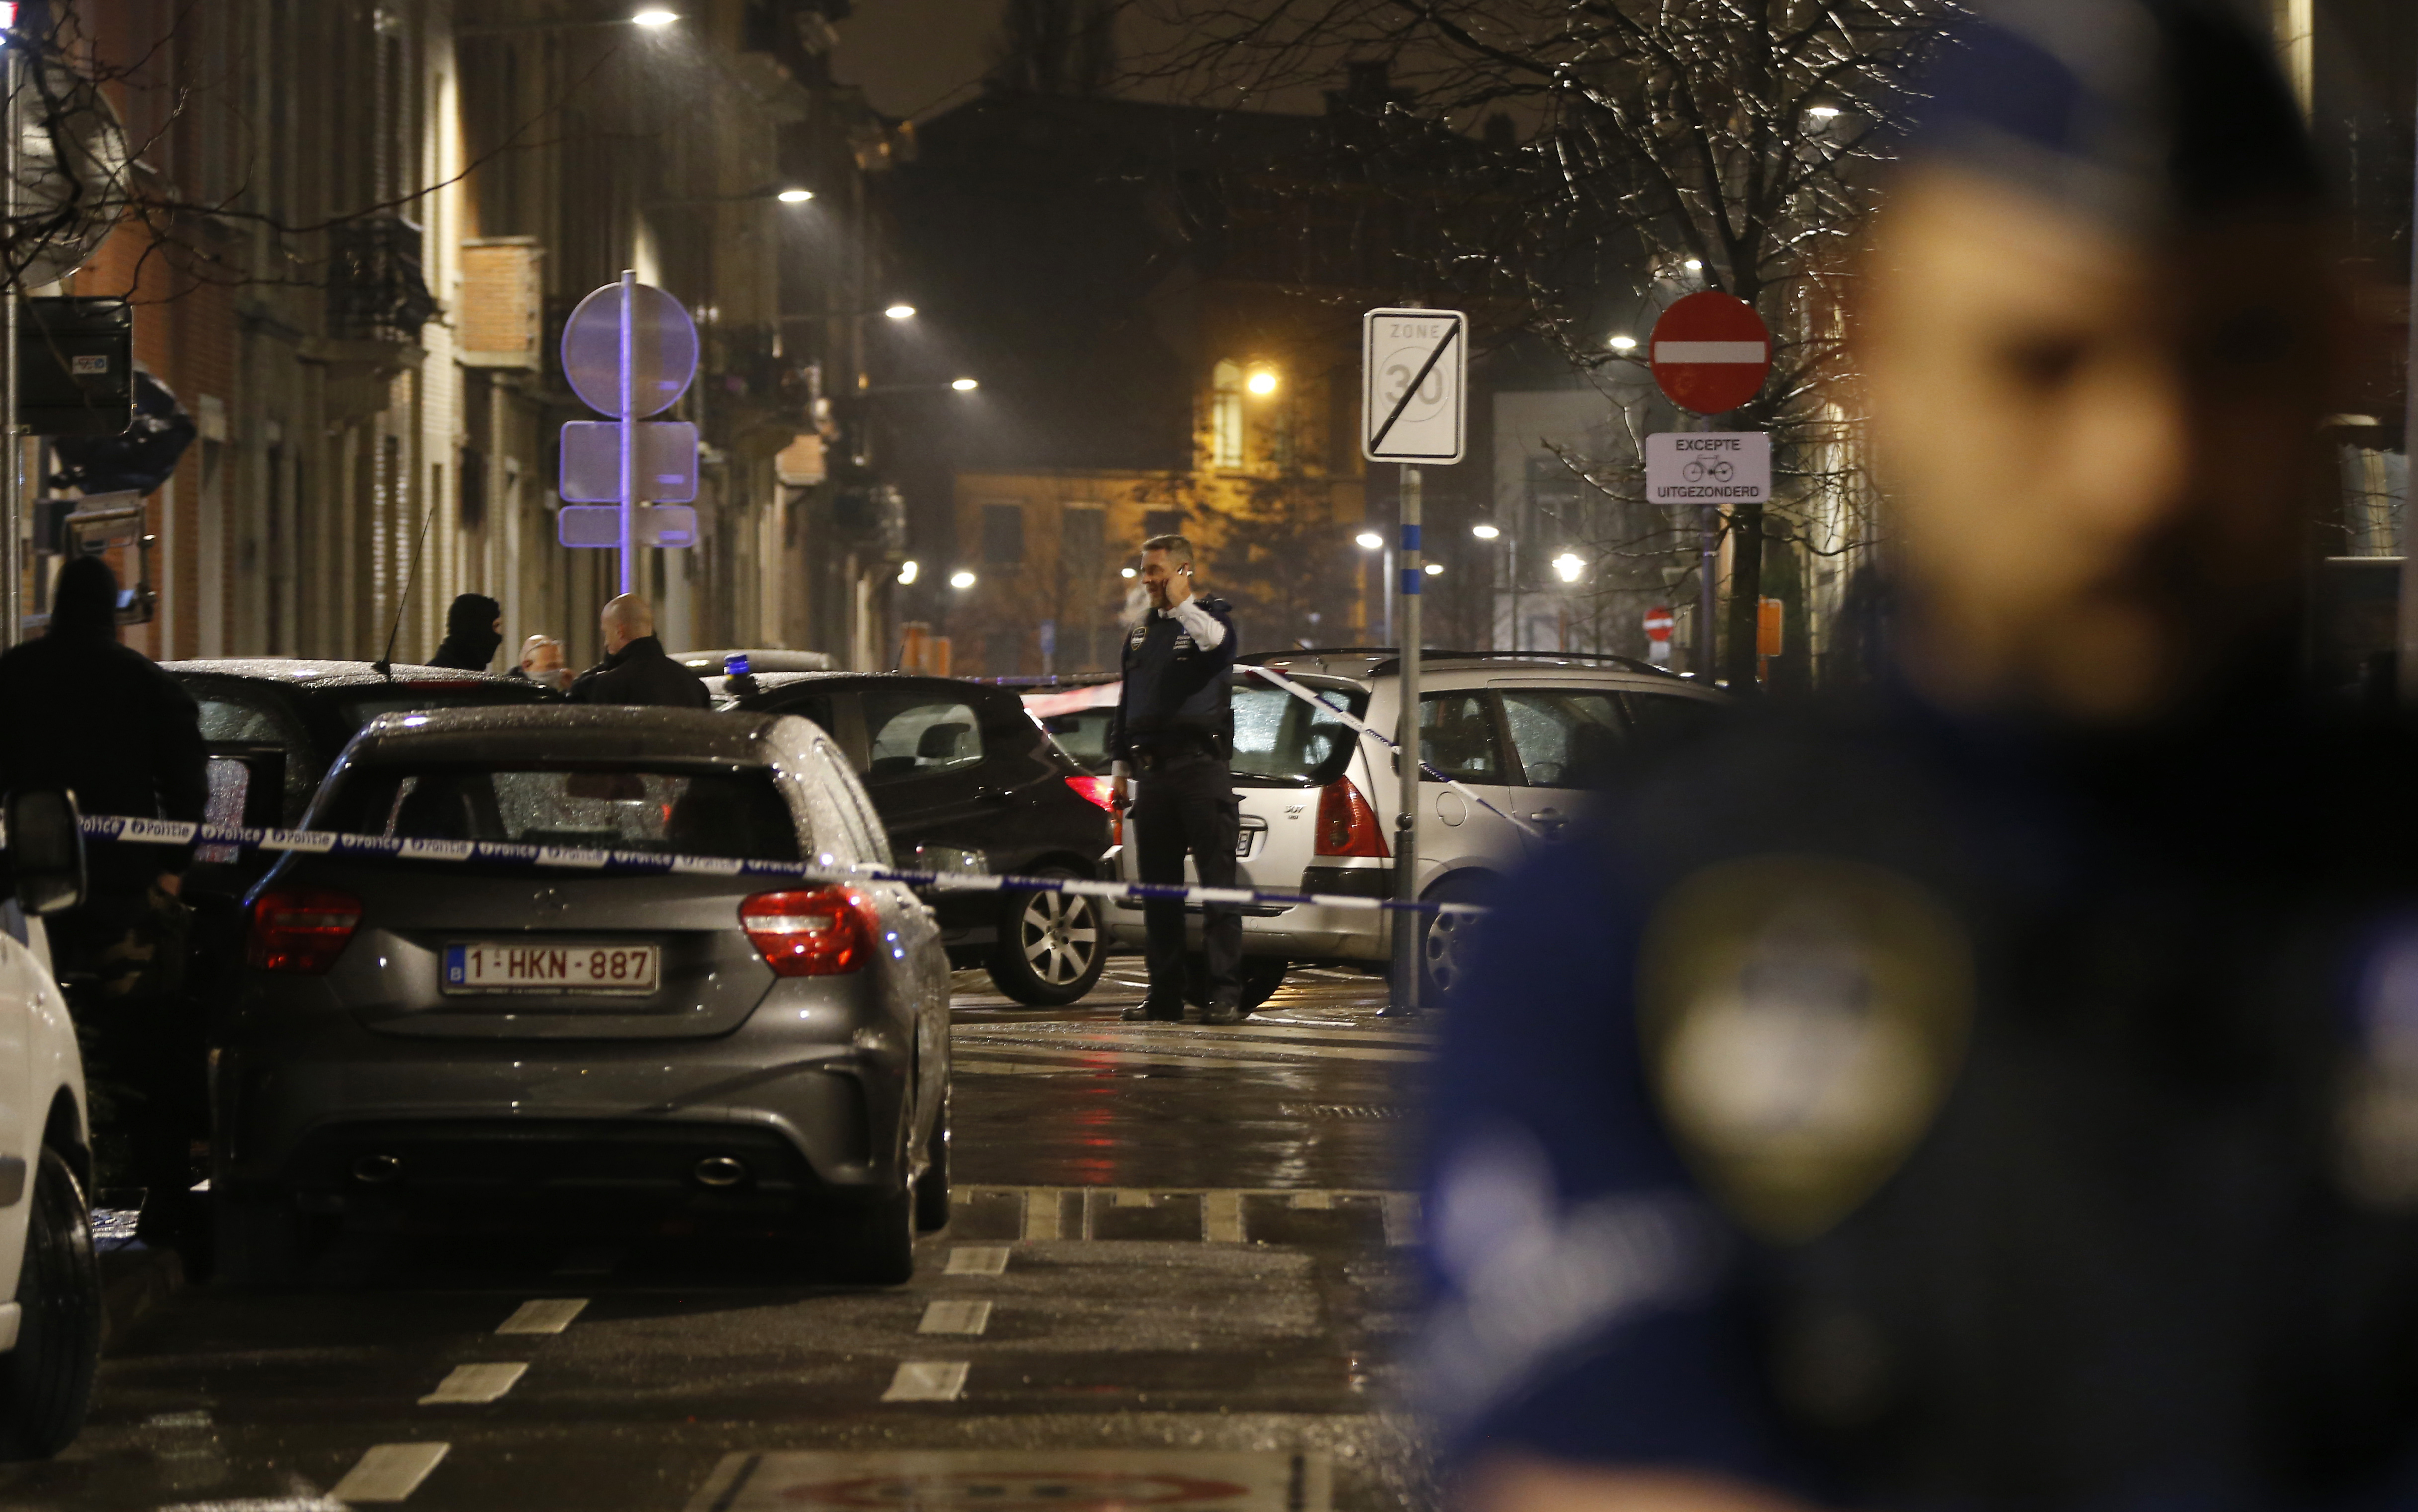 Brussels attacks: Scores remain critical after bombings